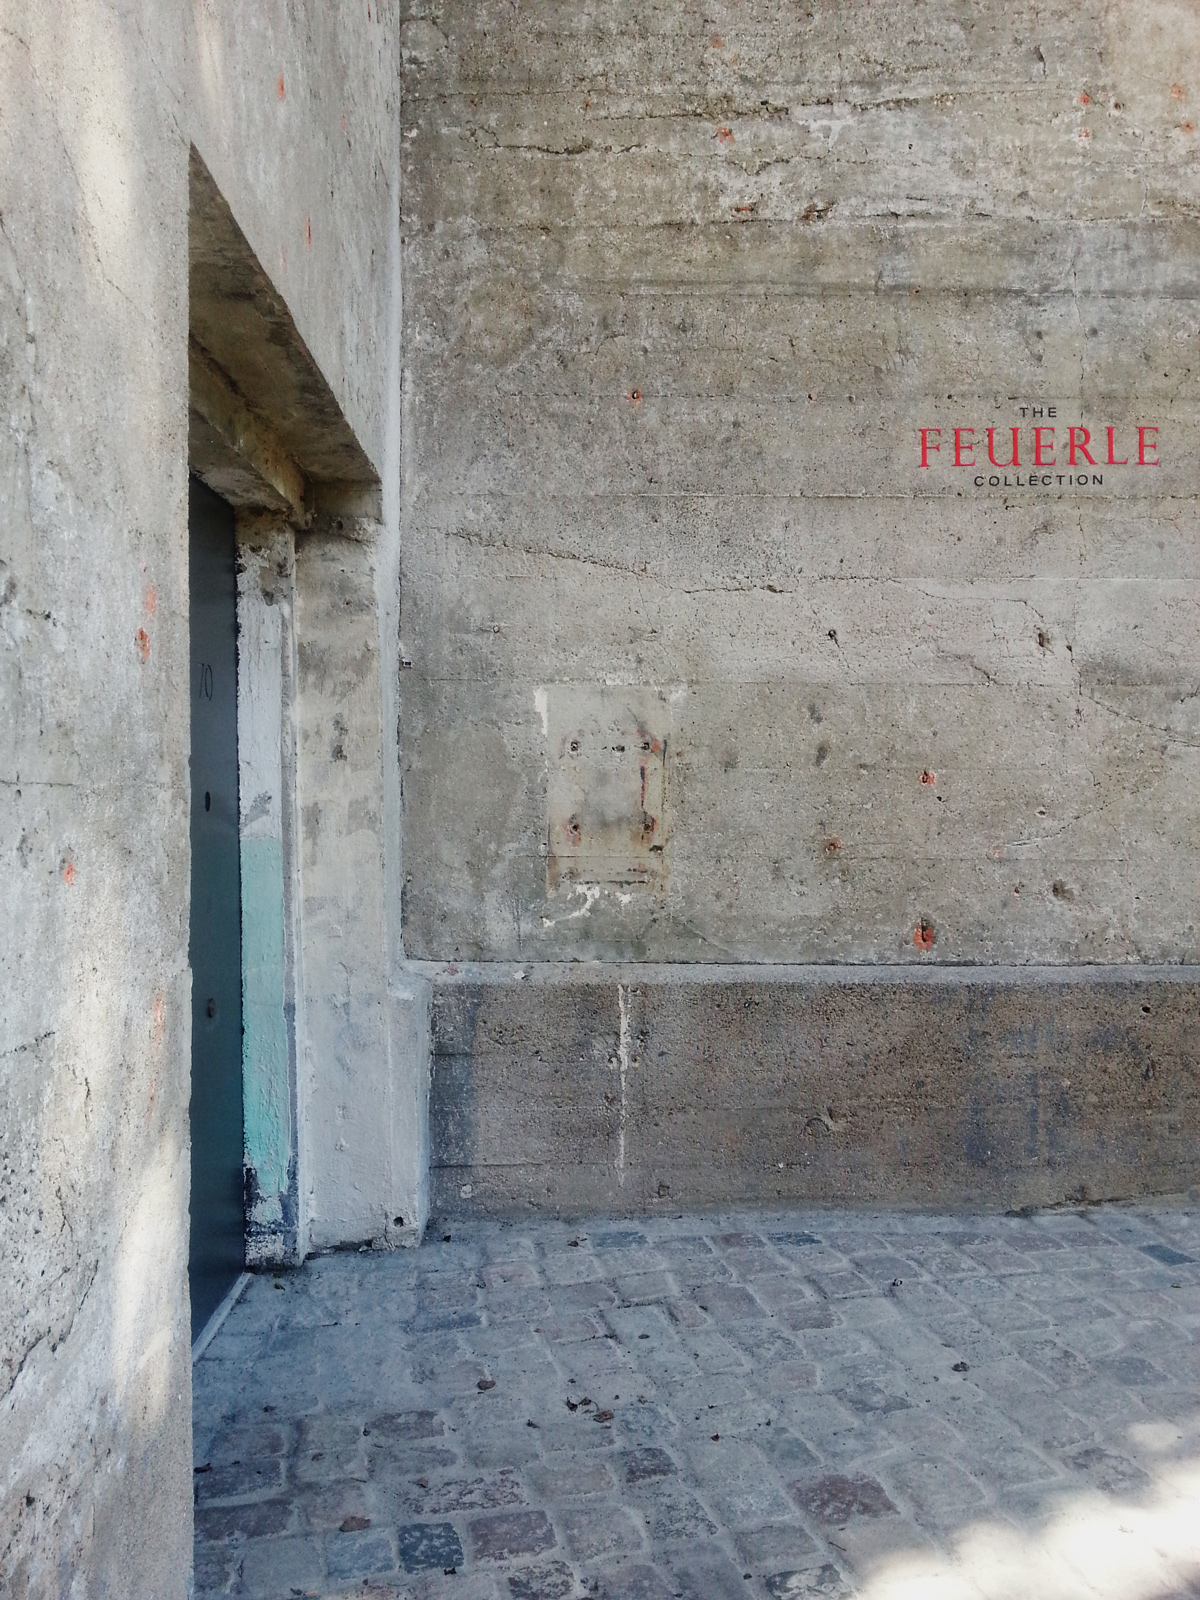 feuerle_collection_bunker_berlin